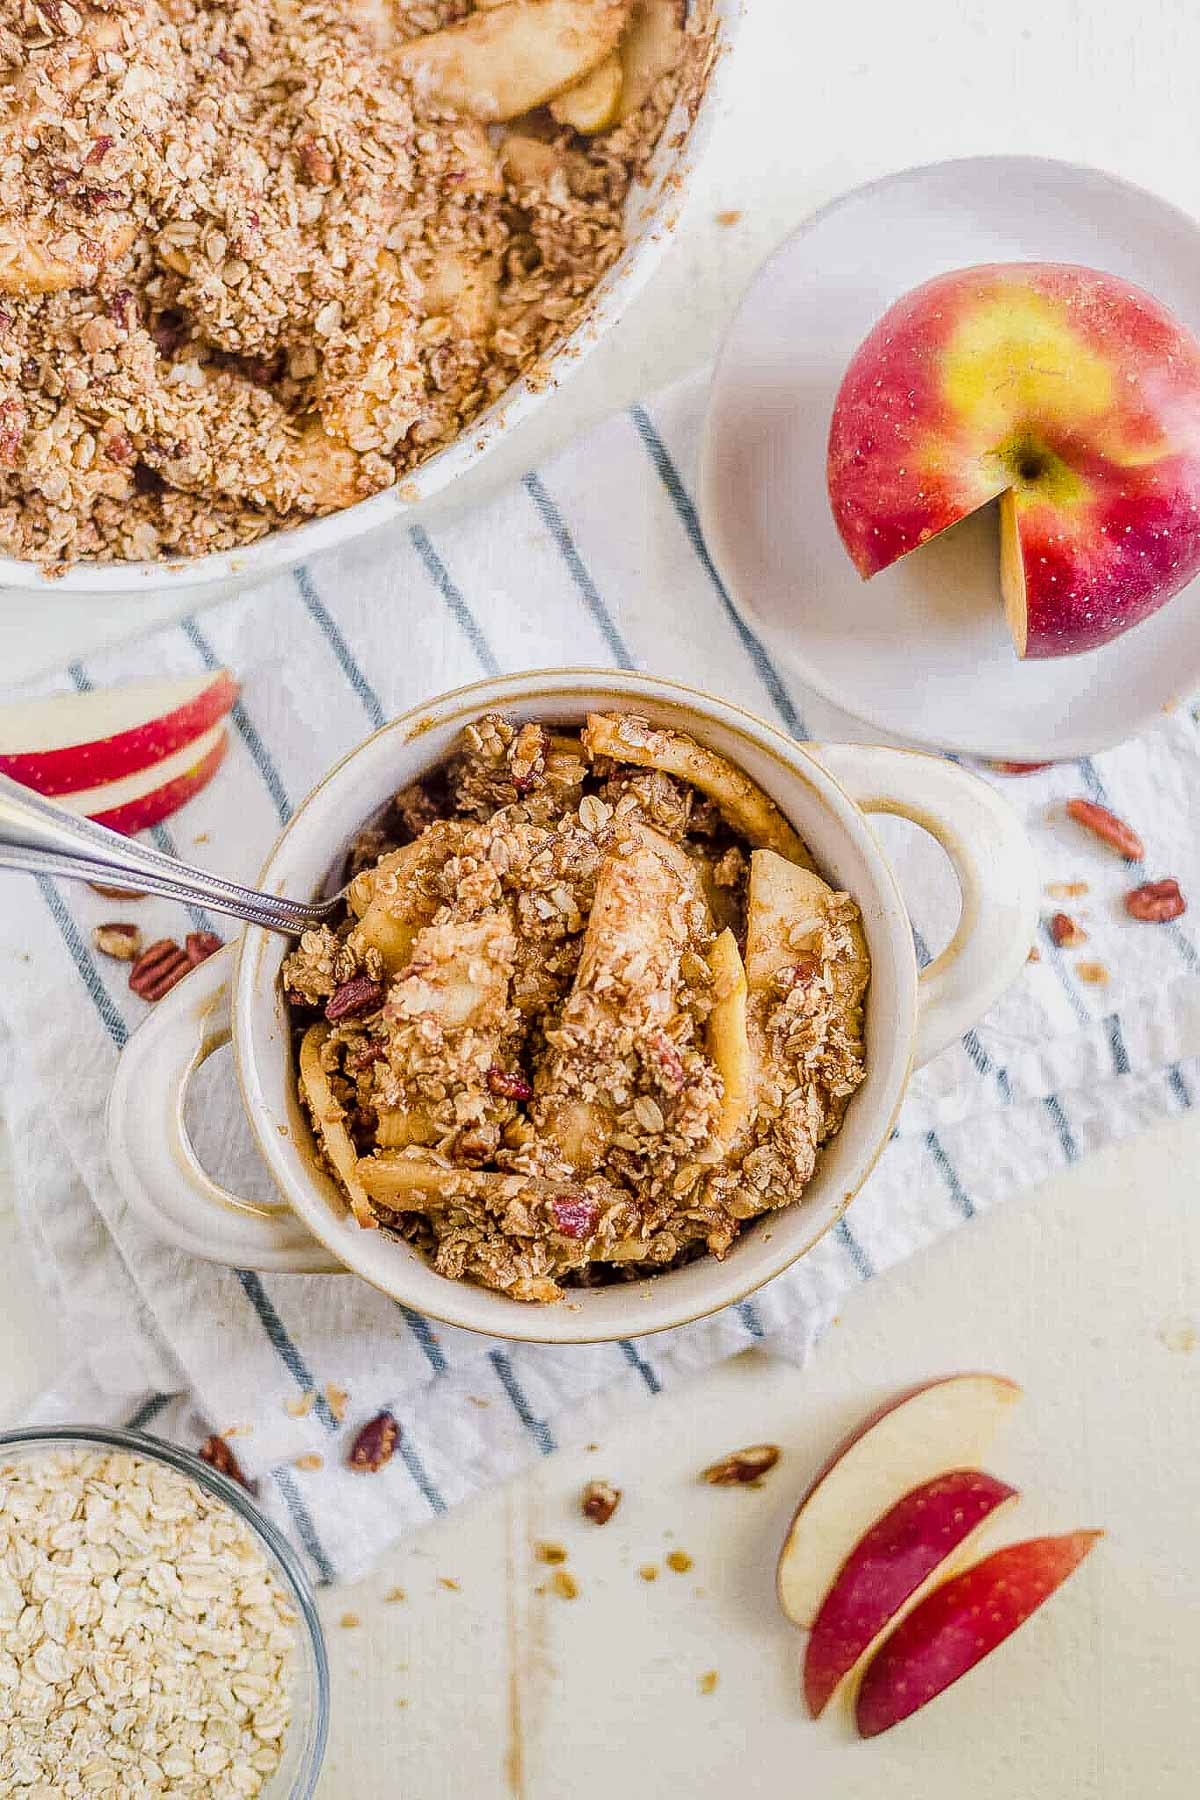 healthy apple crisp in a white bowl with sliced apples on the side